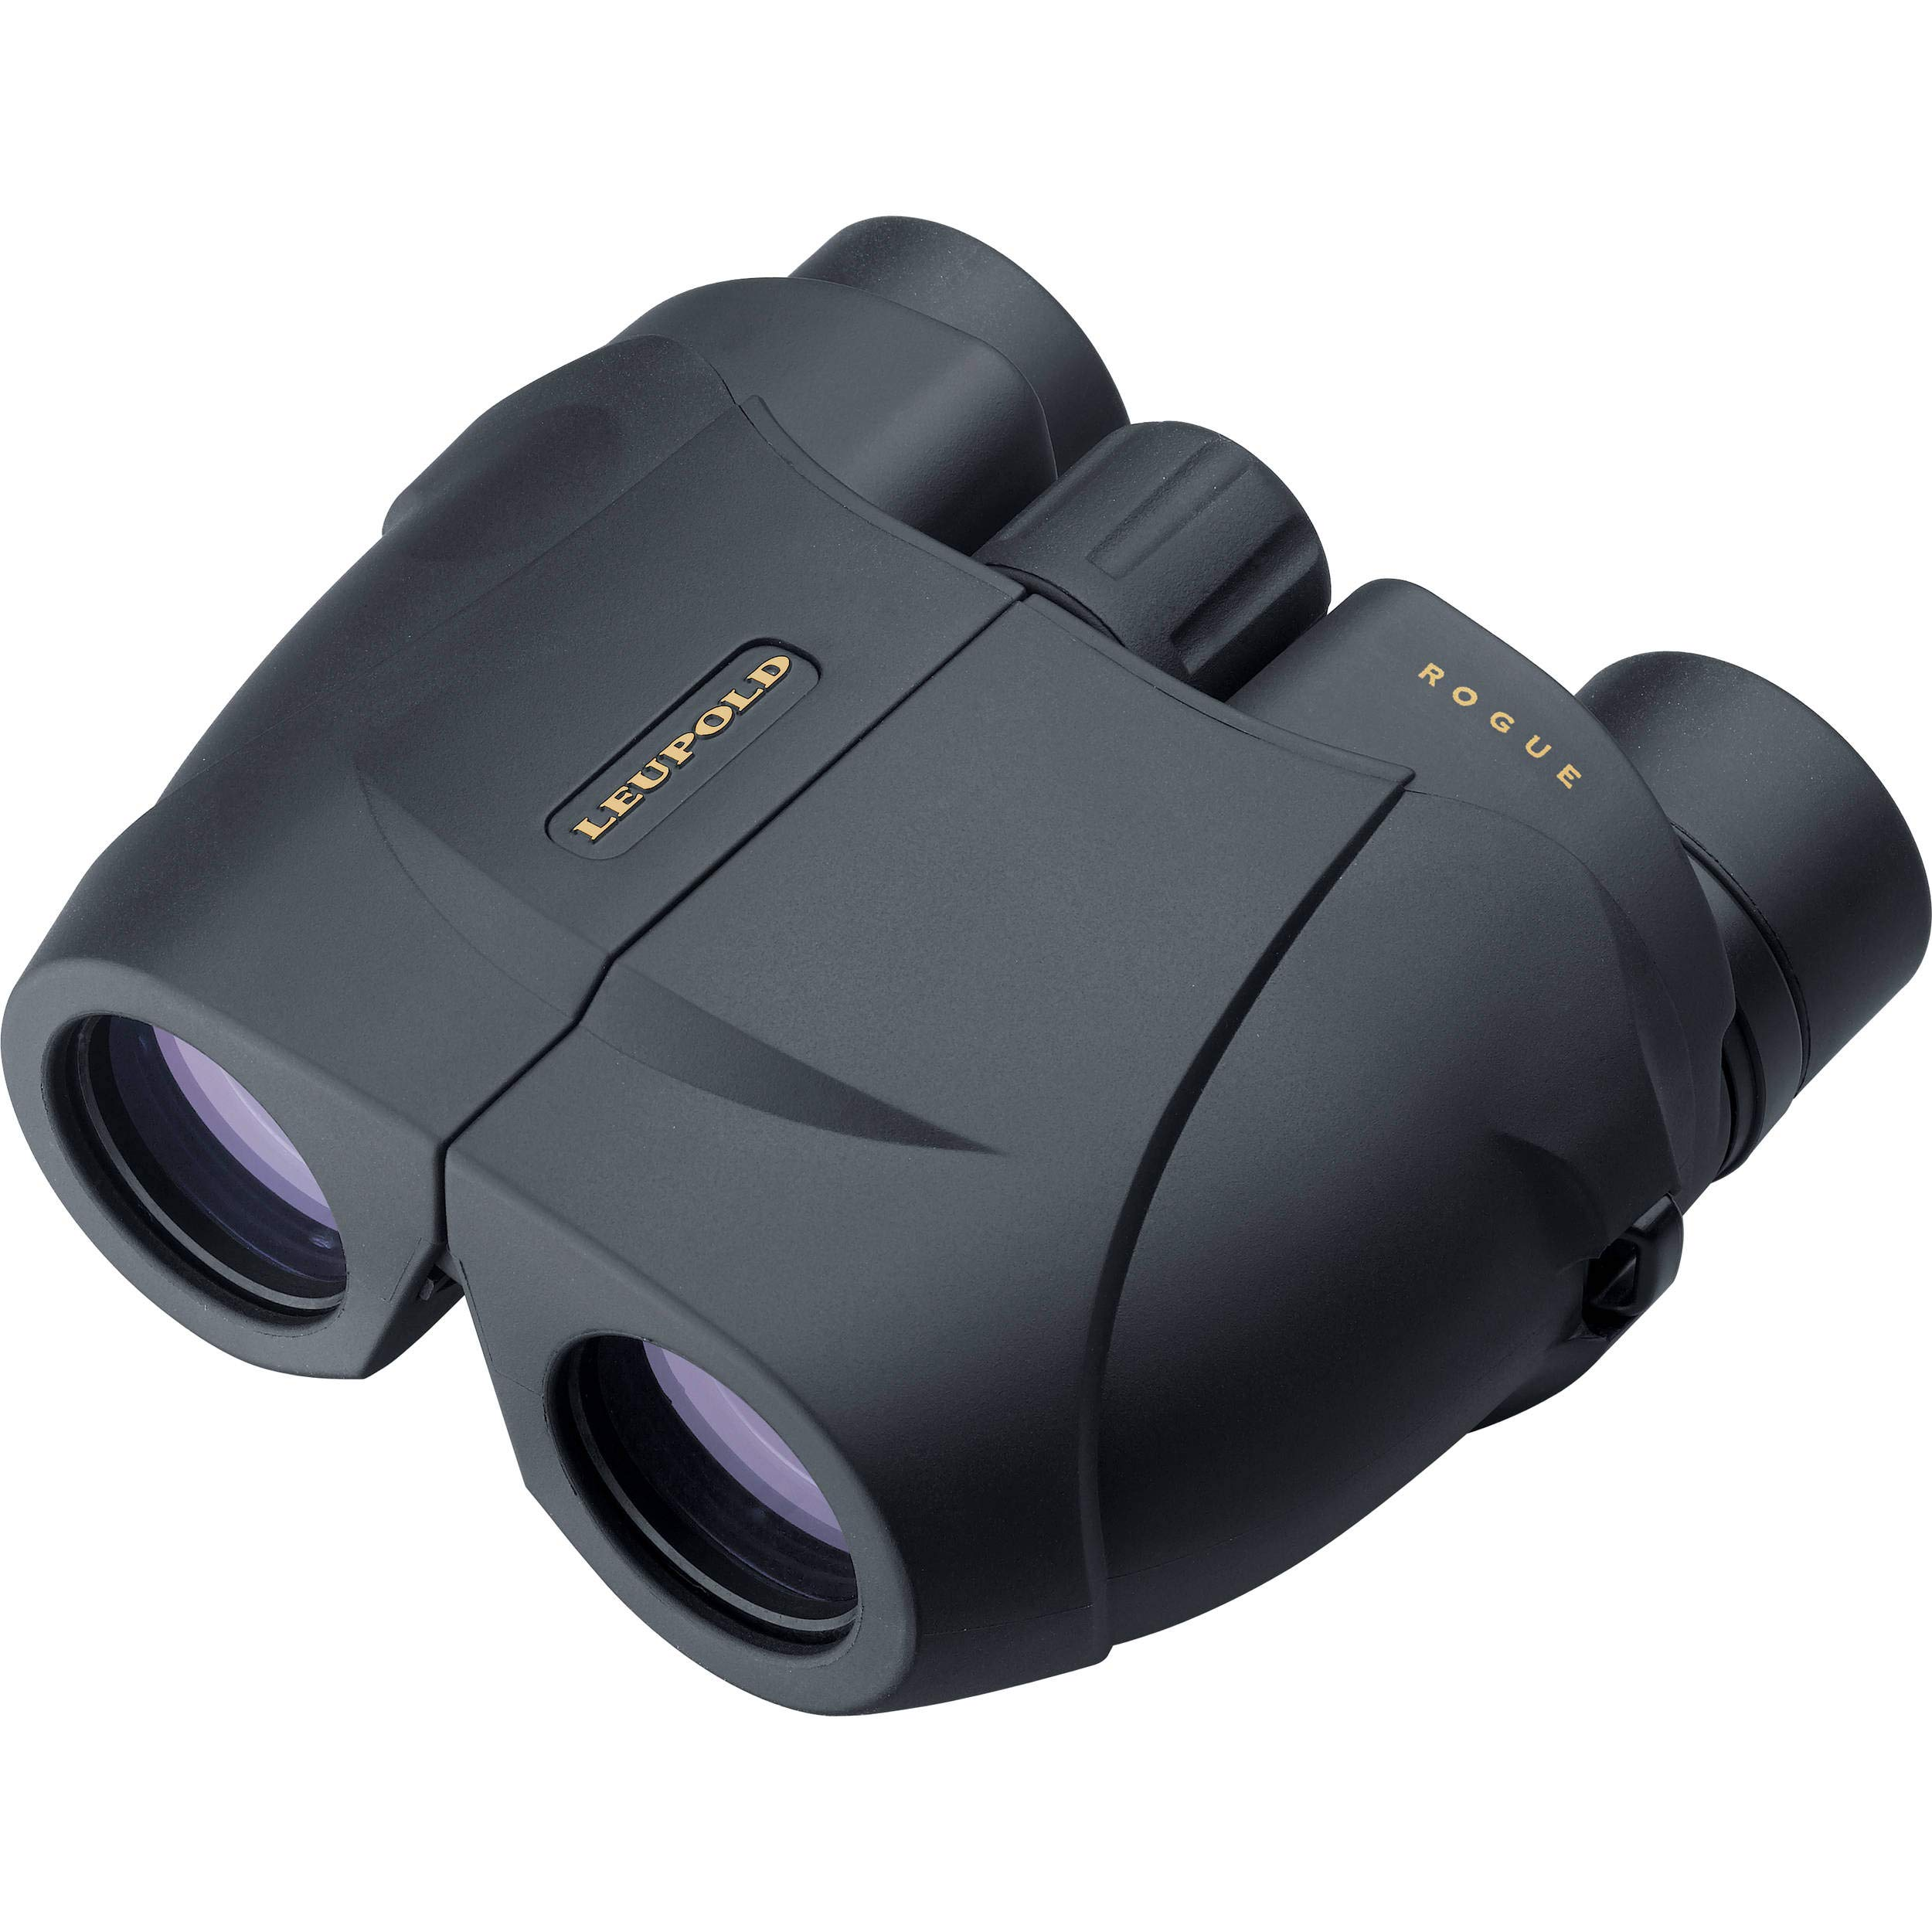 Leupold BX-1 Rogue 8x25mm Compact Binoculars, Porro Prism, Black by Leupold